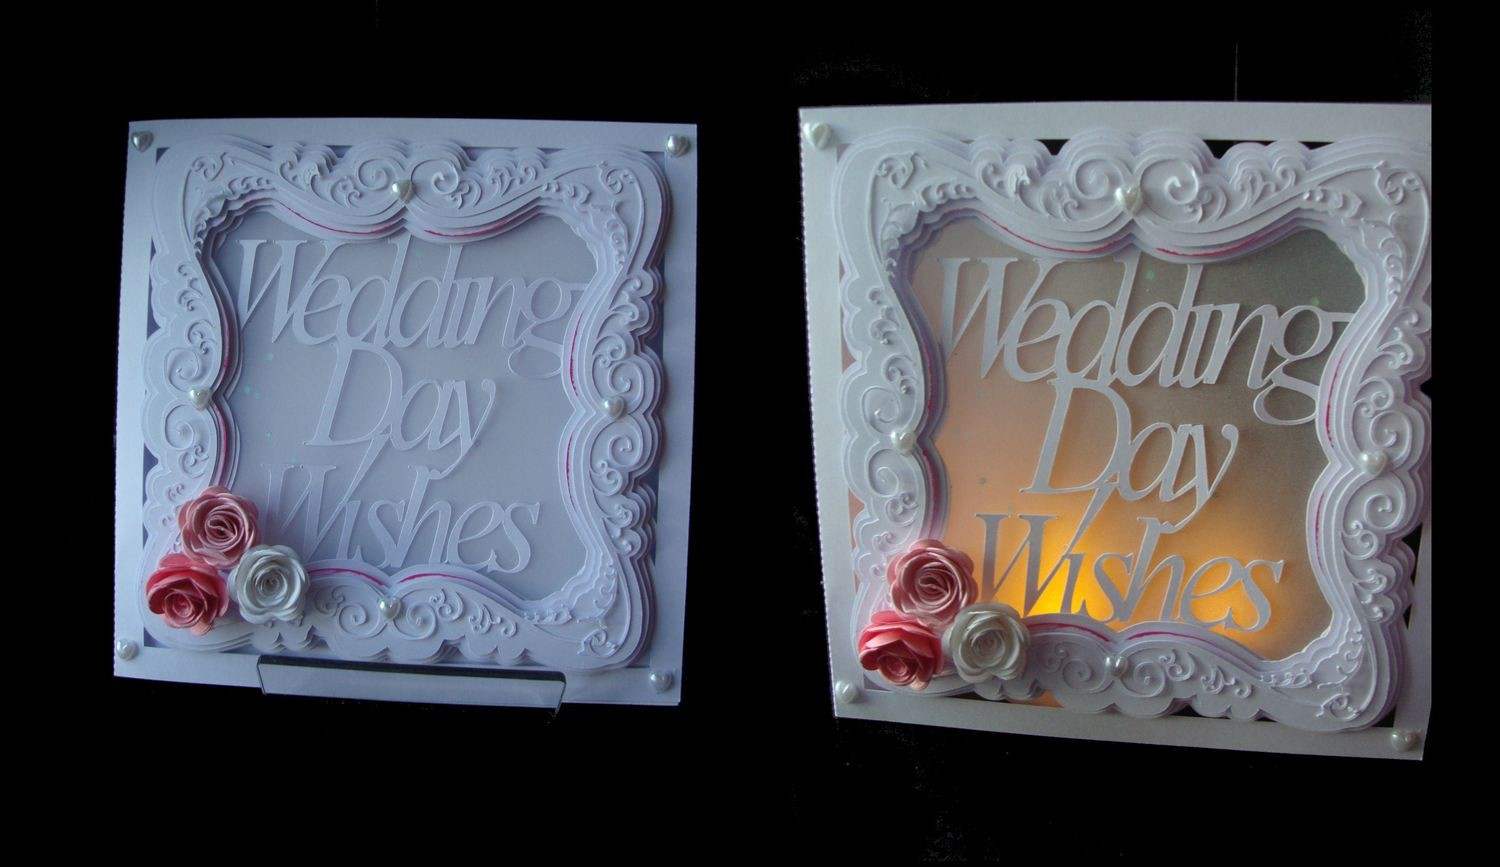 Wedding Day Wishes Card Faux Embossed